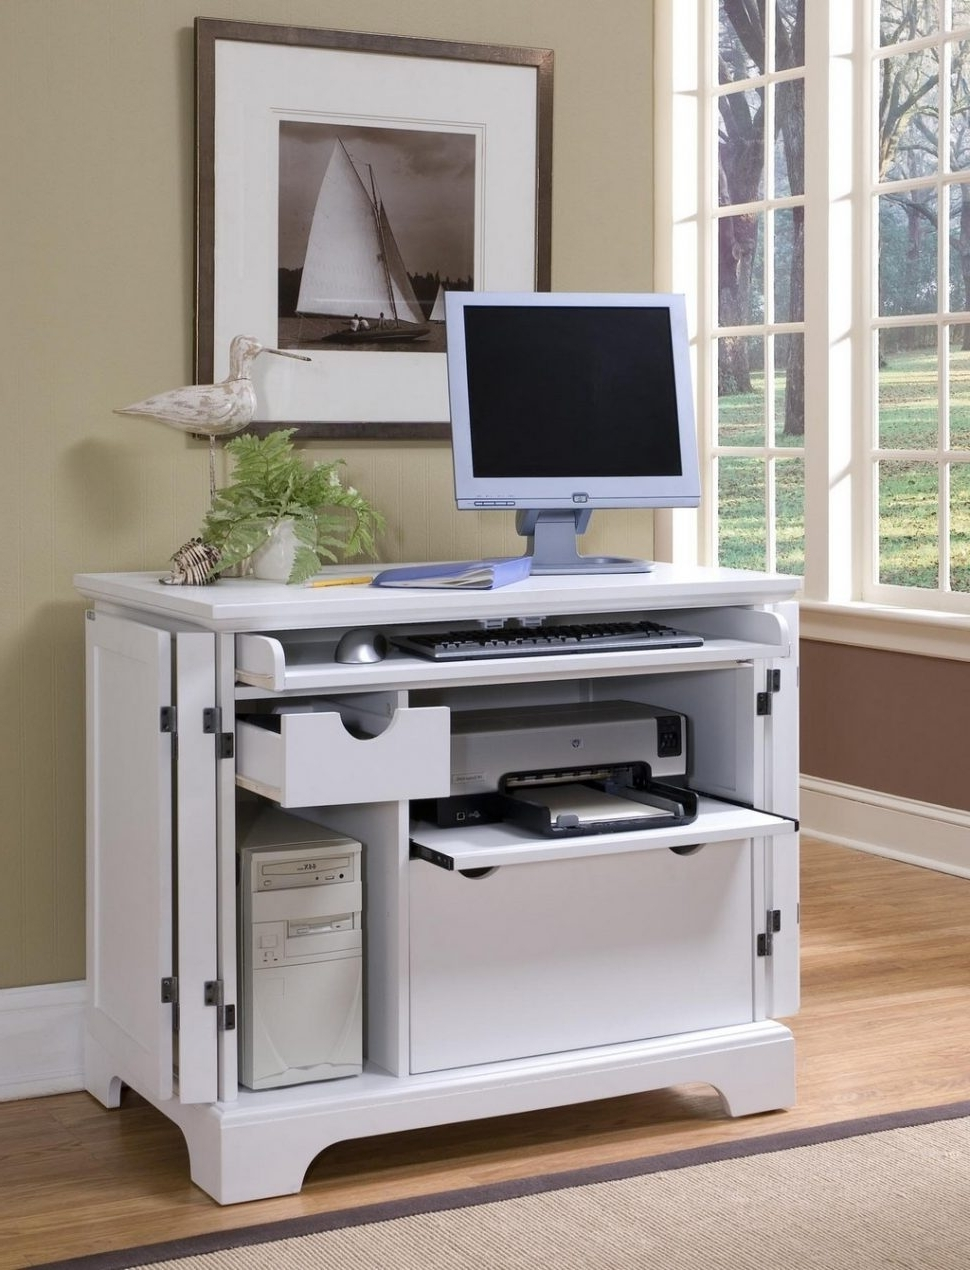 Compact Computer Desks Pertaining To 2018 Desk : Cheap Corner Desks For Small Spaces Compact Computer Desk (View 3 of 20)